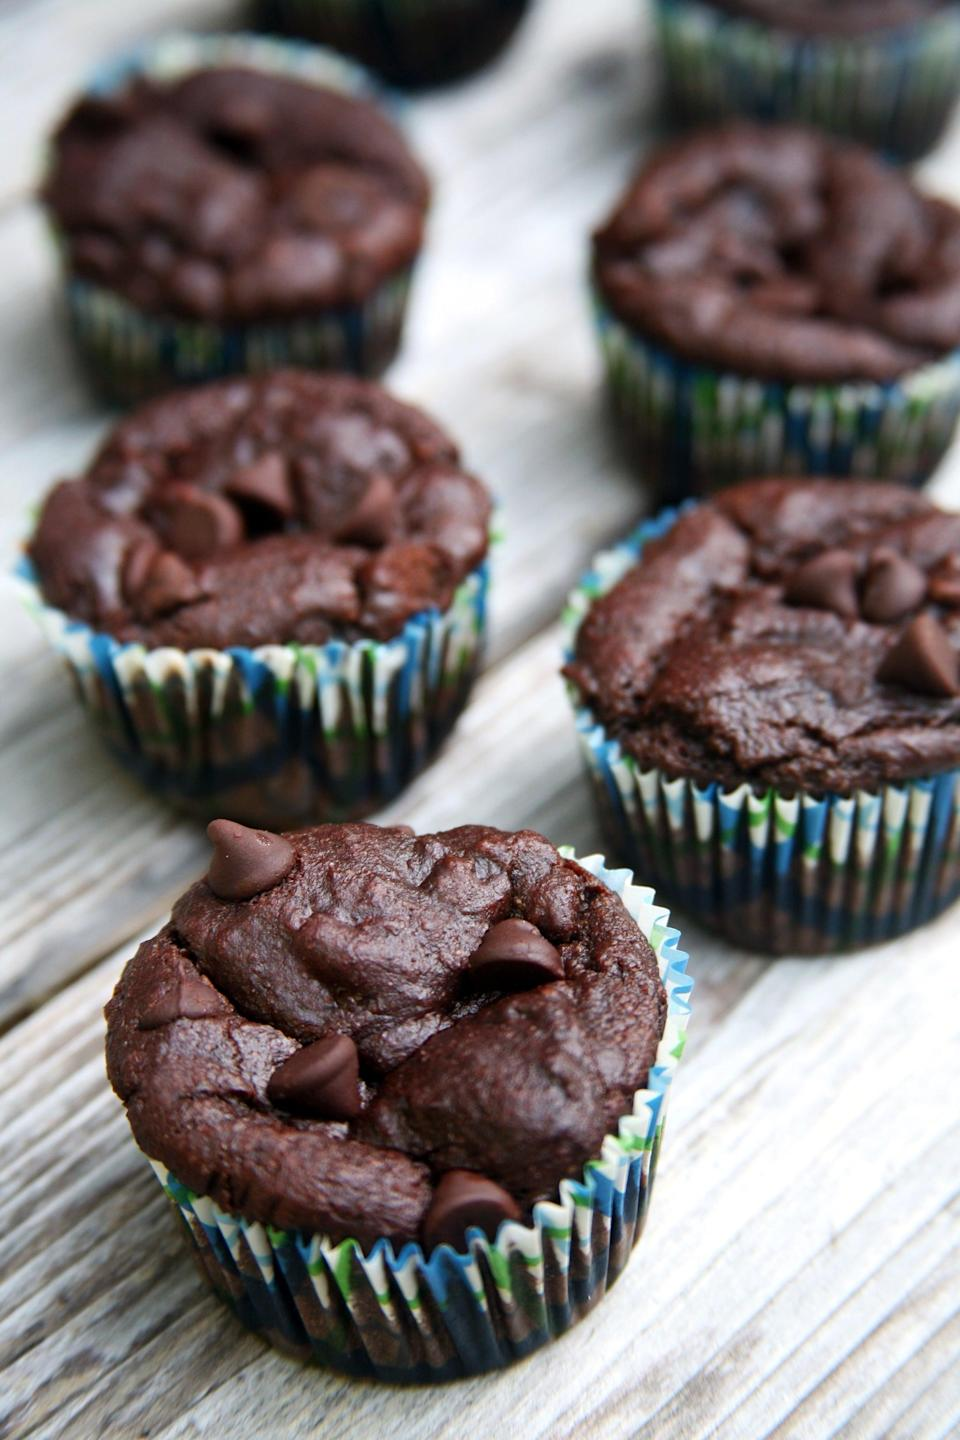 "<p>Give your overripe bananas a second life with these protein-packed chocolate muffins - the perfect solution for your morning sweet tooth.</p> <p><strong>Calories:</strong> 130 per muffin<br> <strong>Protein:</strong> 5.5 grams</p> <p><strong>Get the recipe:</strong> <a href=""https://www.popsugar.com/fitness/Dairy-Free-Chocolate-Banana-Bread-42199657"" class=""link rapid-noclick-resp"" rel=""nofollow noopener"" target=""_blank"" data-ylk=""slk:chocolate banana protein muffins"">chocolate banana protein muffins</a></p>"